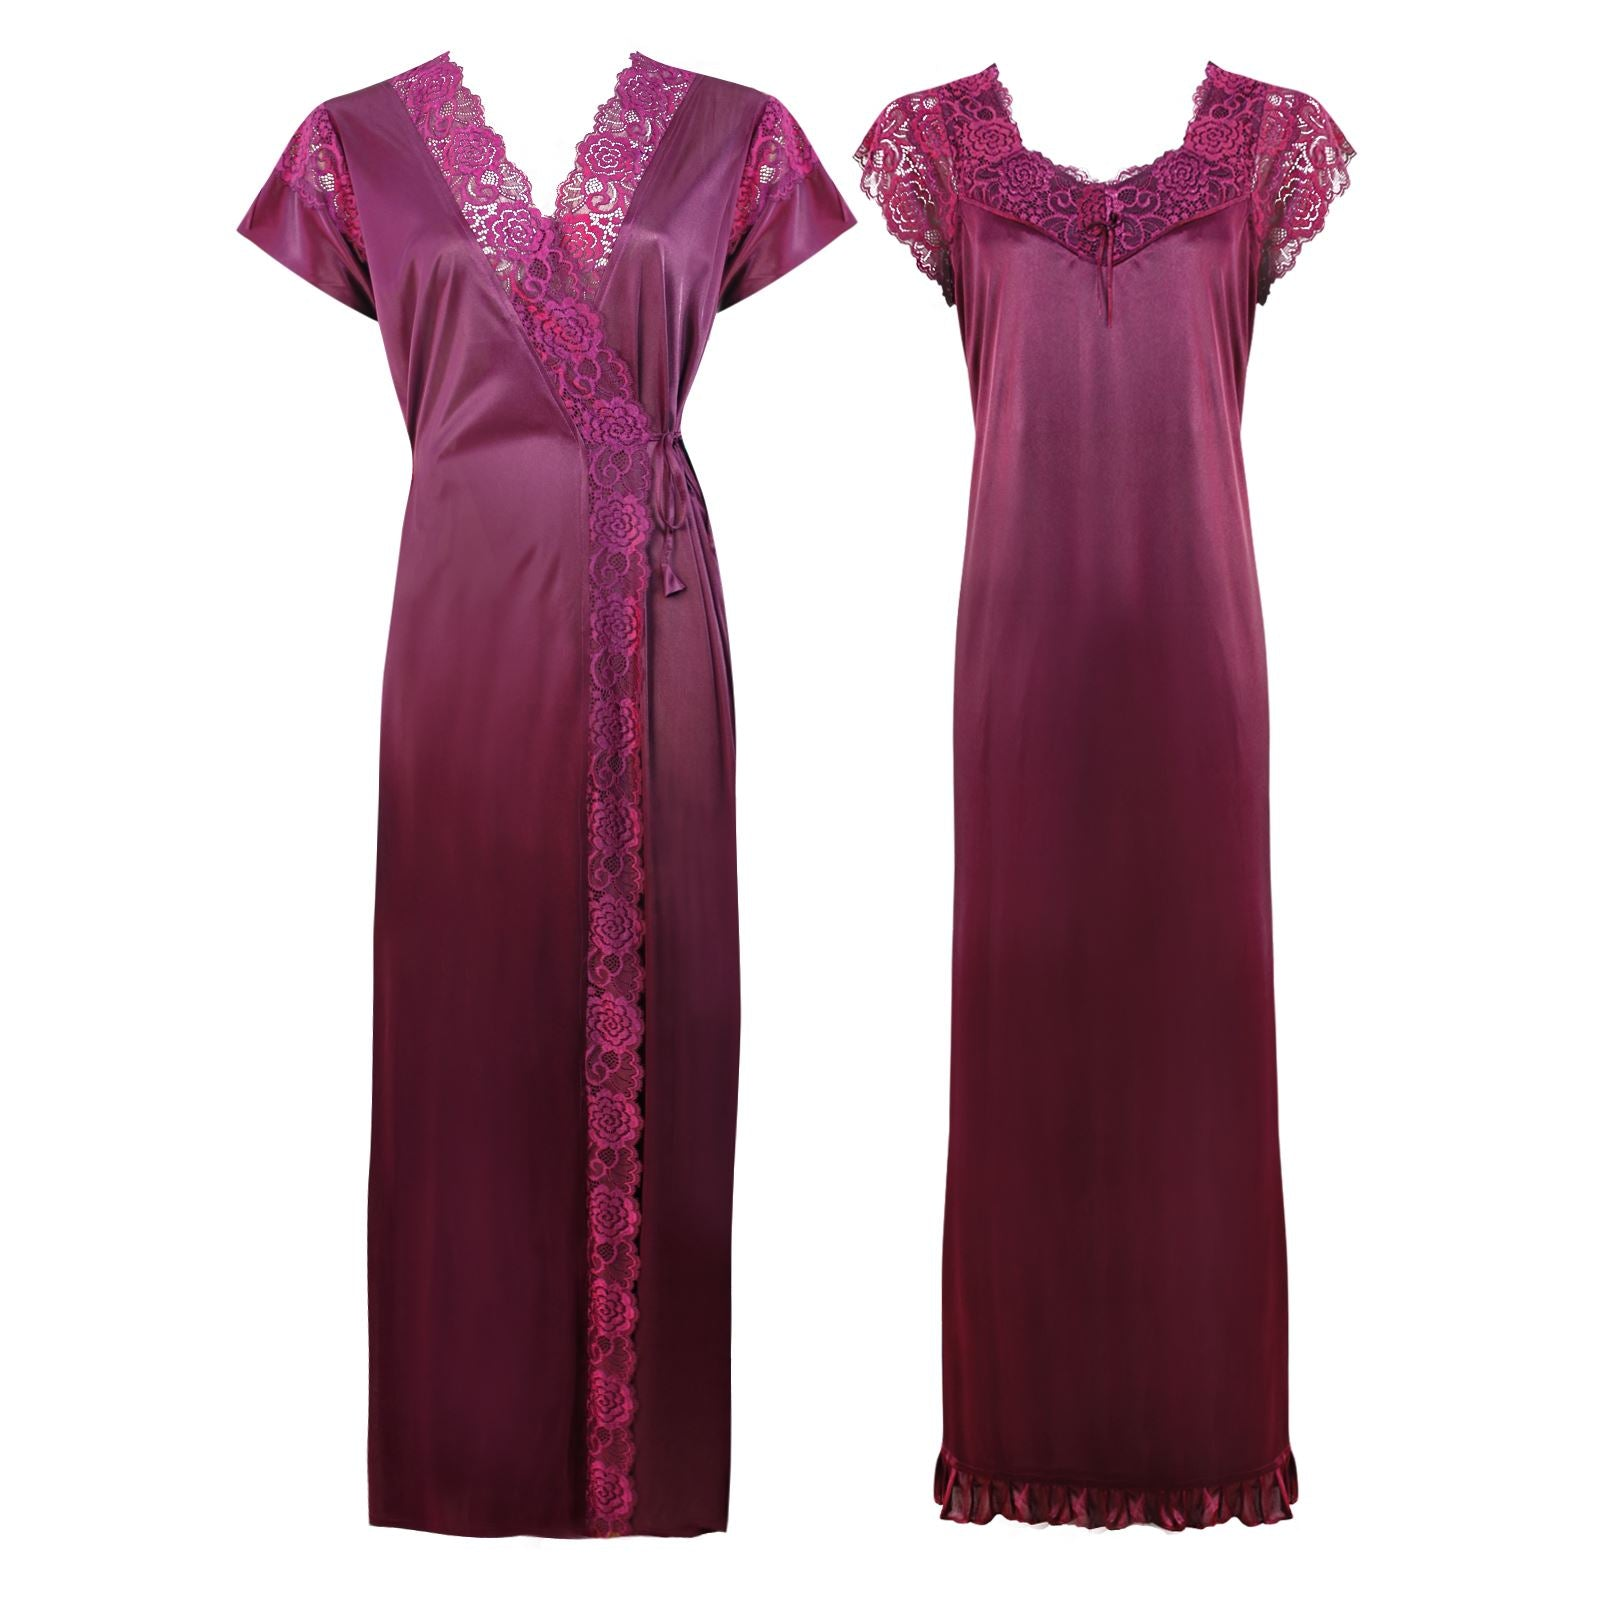 Color: Dark Wine 2 Pc Satin Lace Nighty and Robe Size: One Size: Regular (8-14)